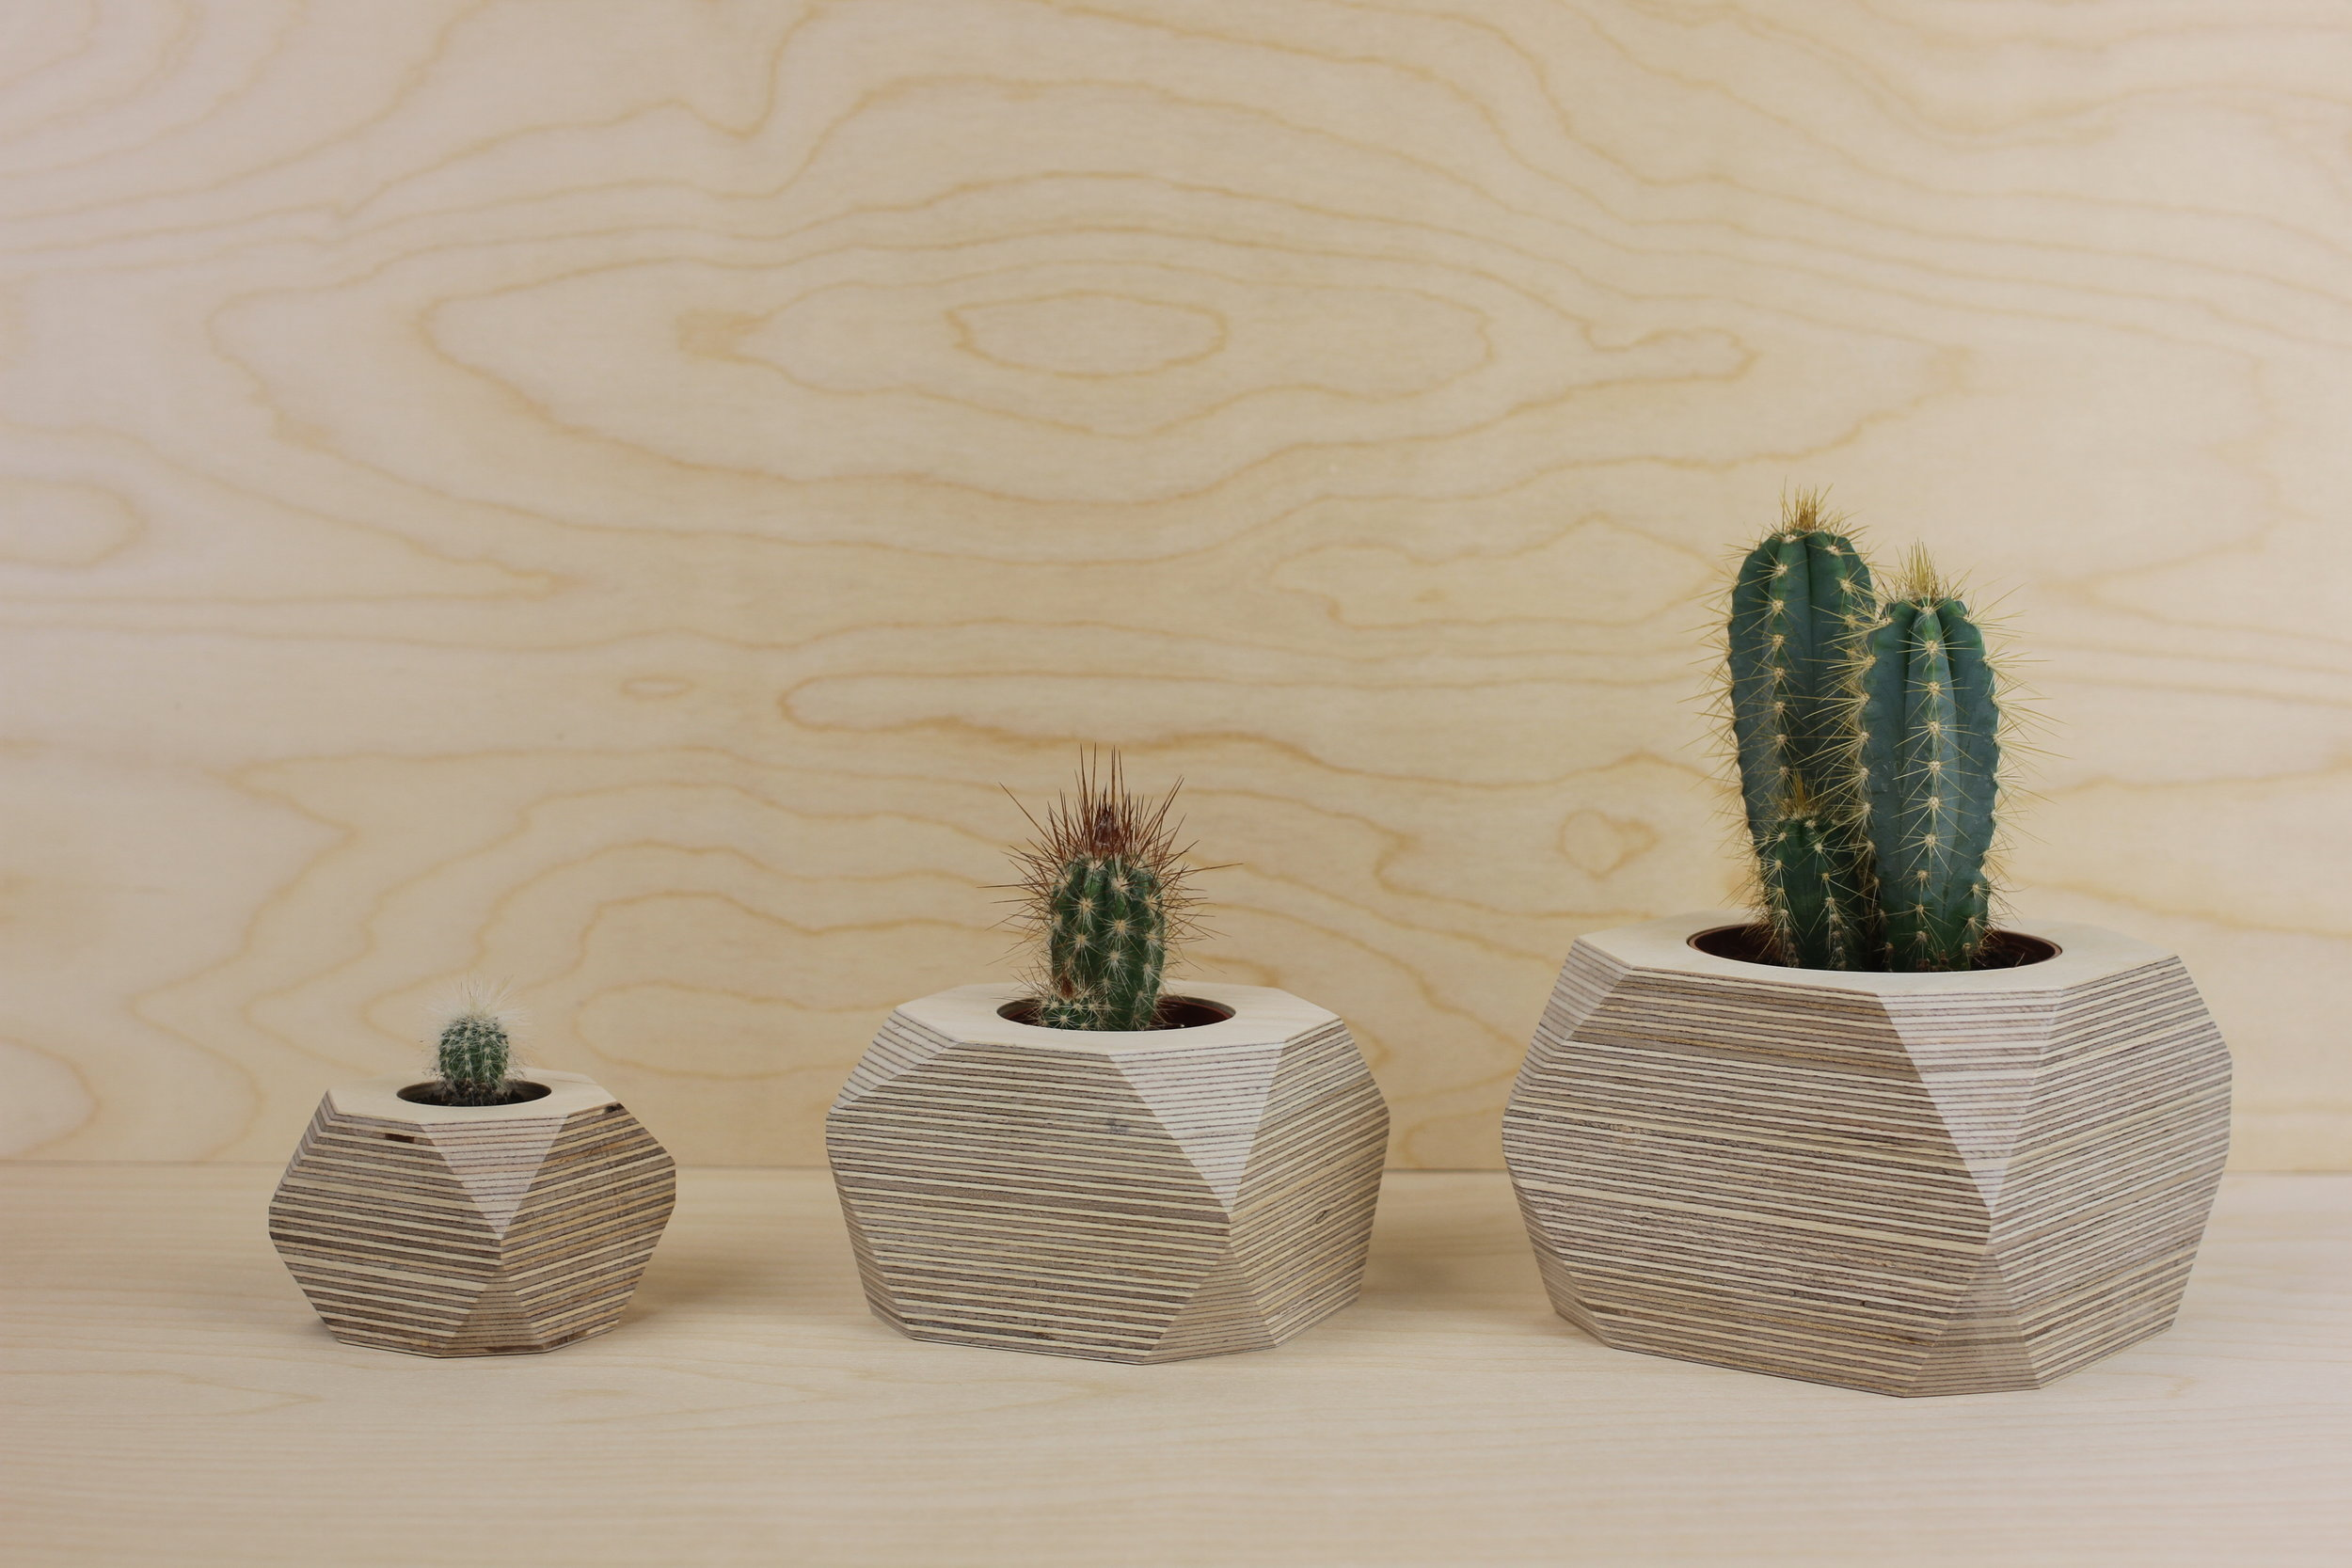 OOOD Objects - Out of order design product range